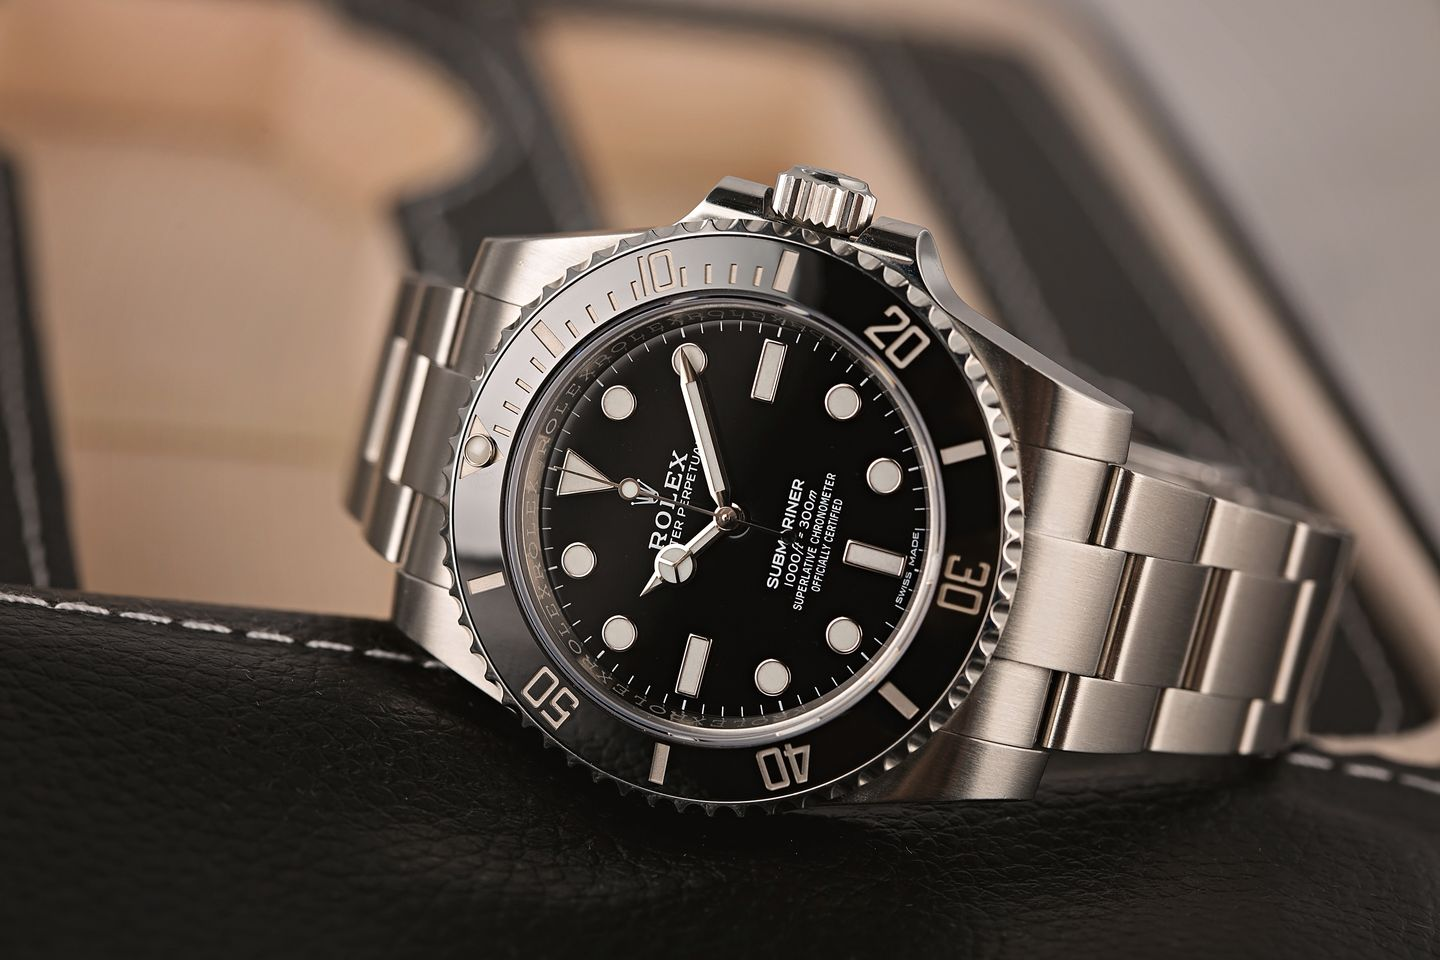 Rolex Watches Submariner 114060 No-Date Personality Test